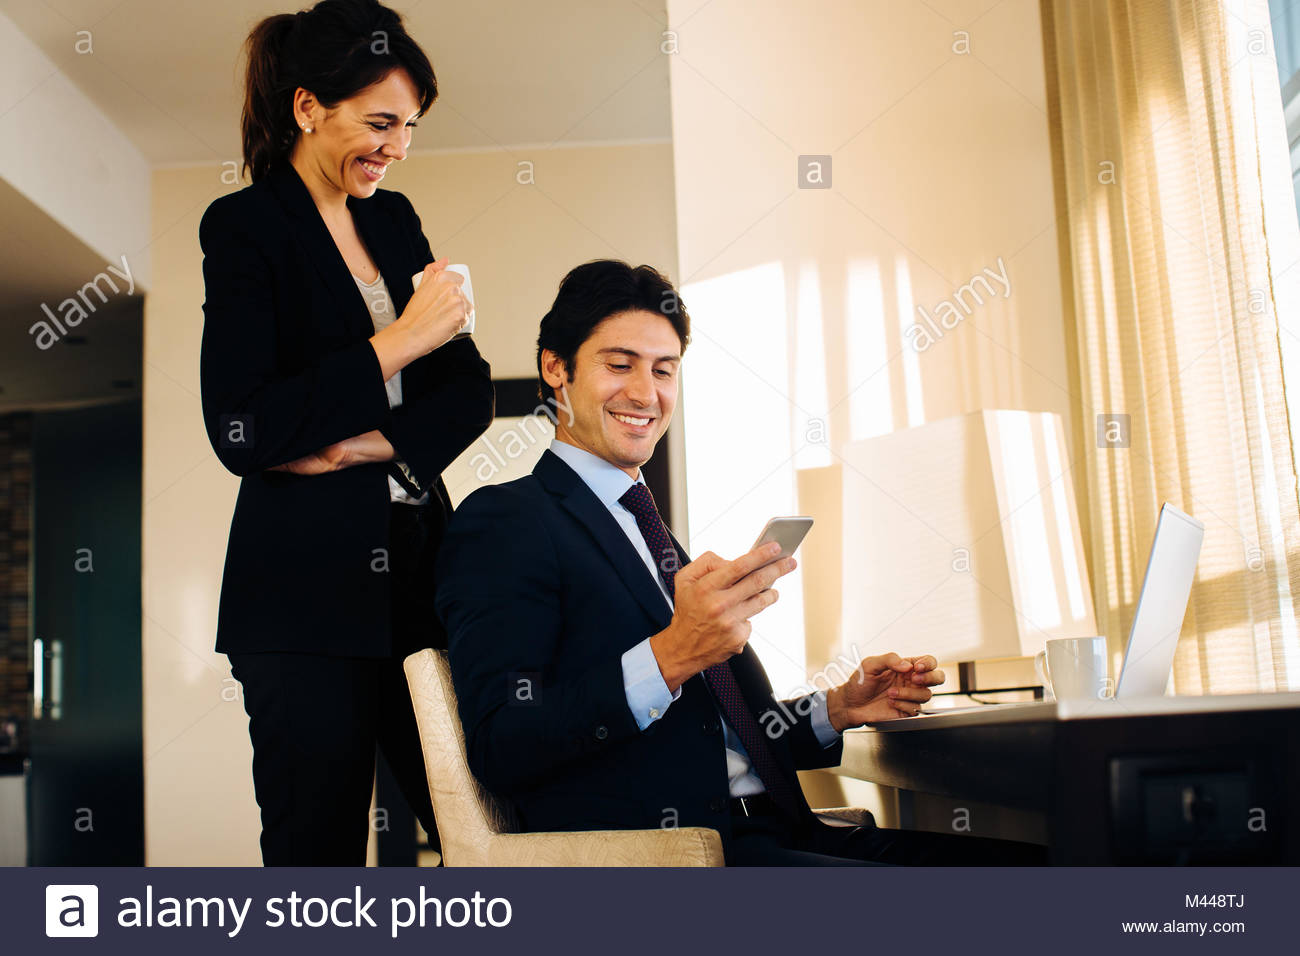 Businessman and businesswoman sharing text message in hotel room Stock Photo